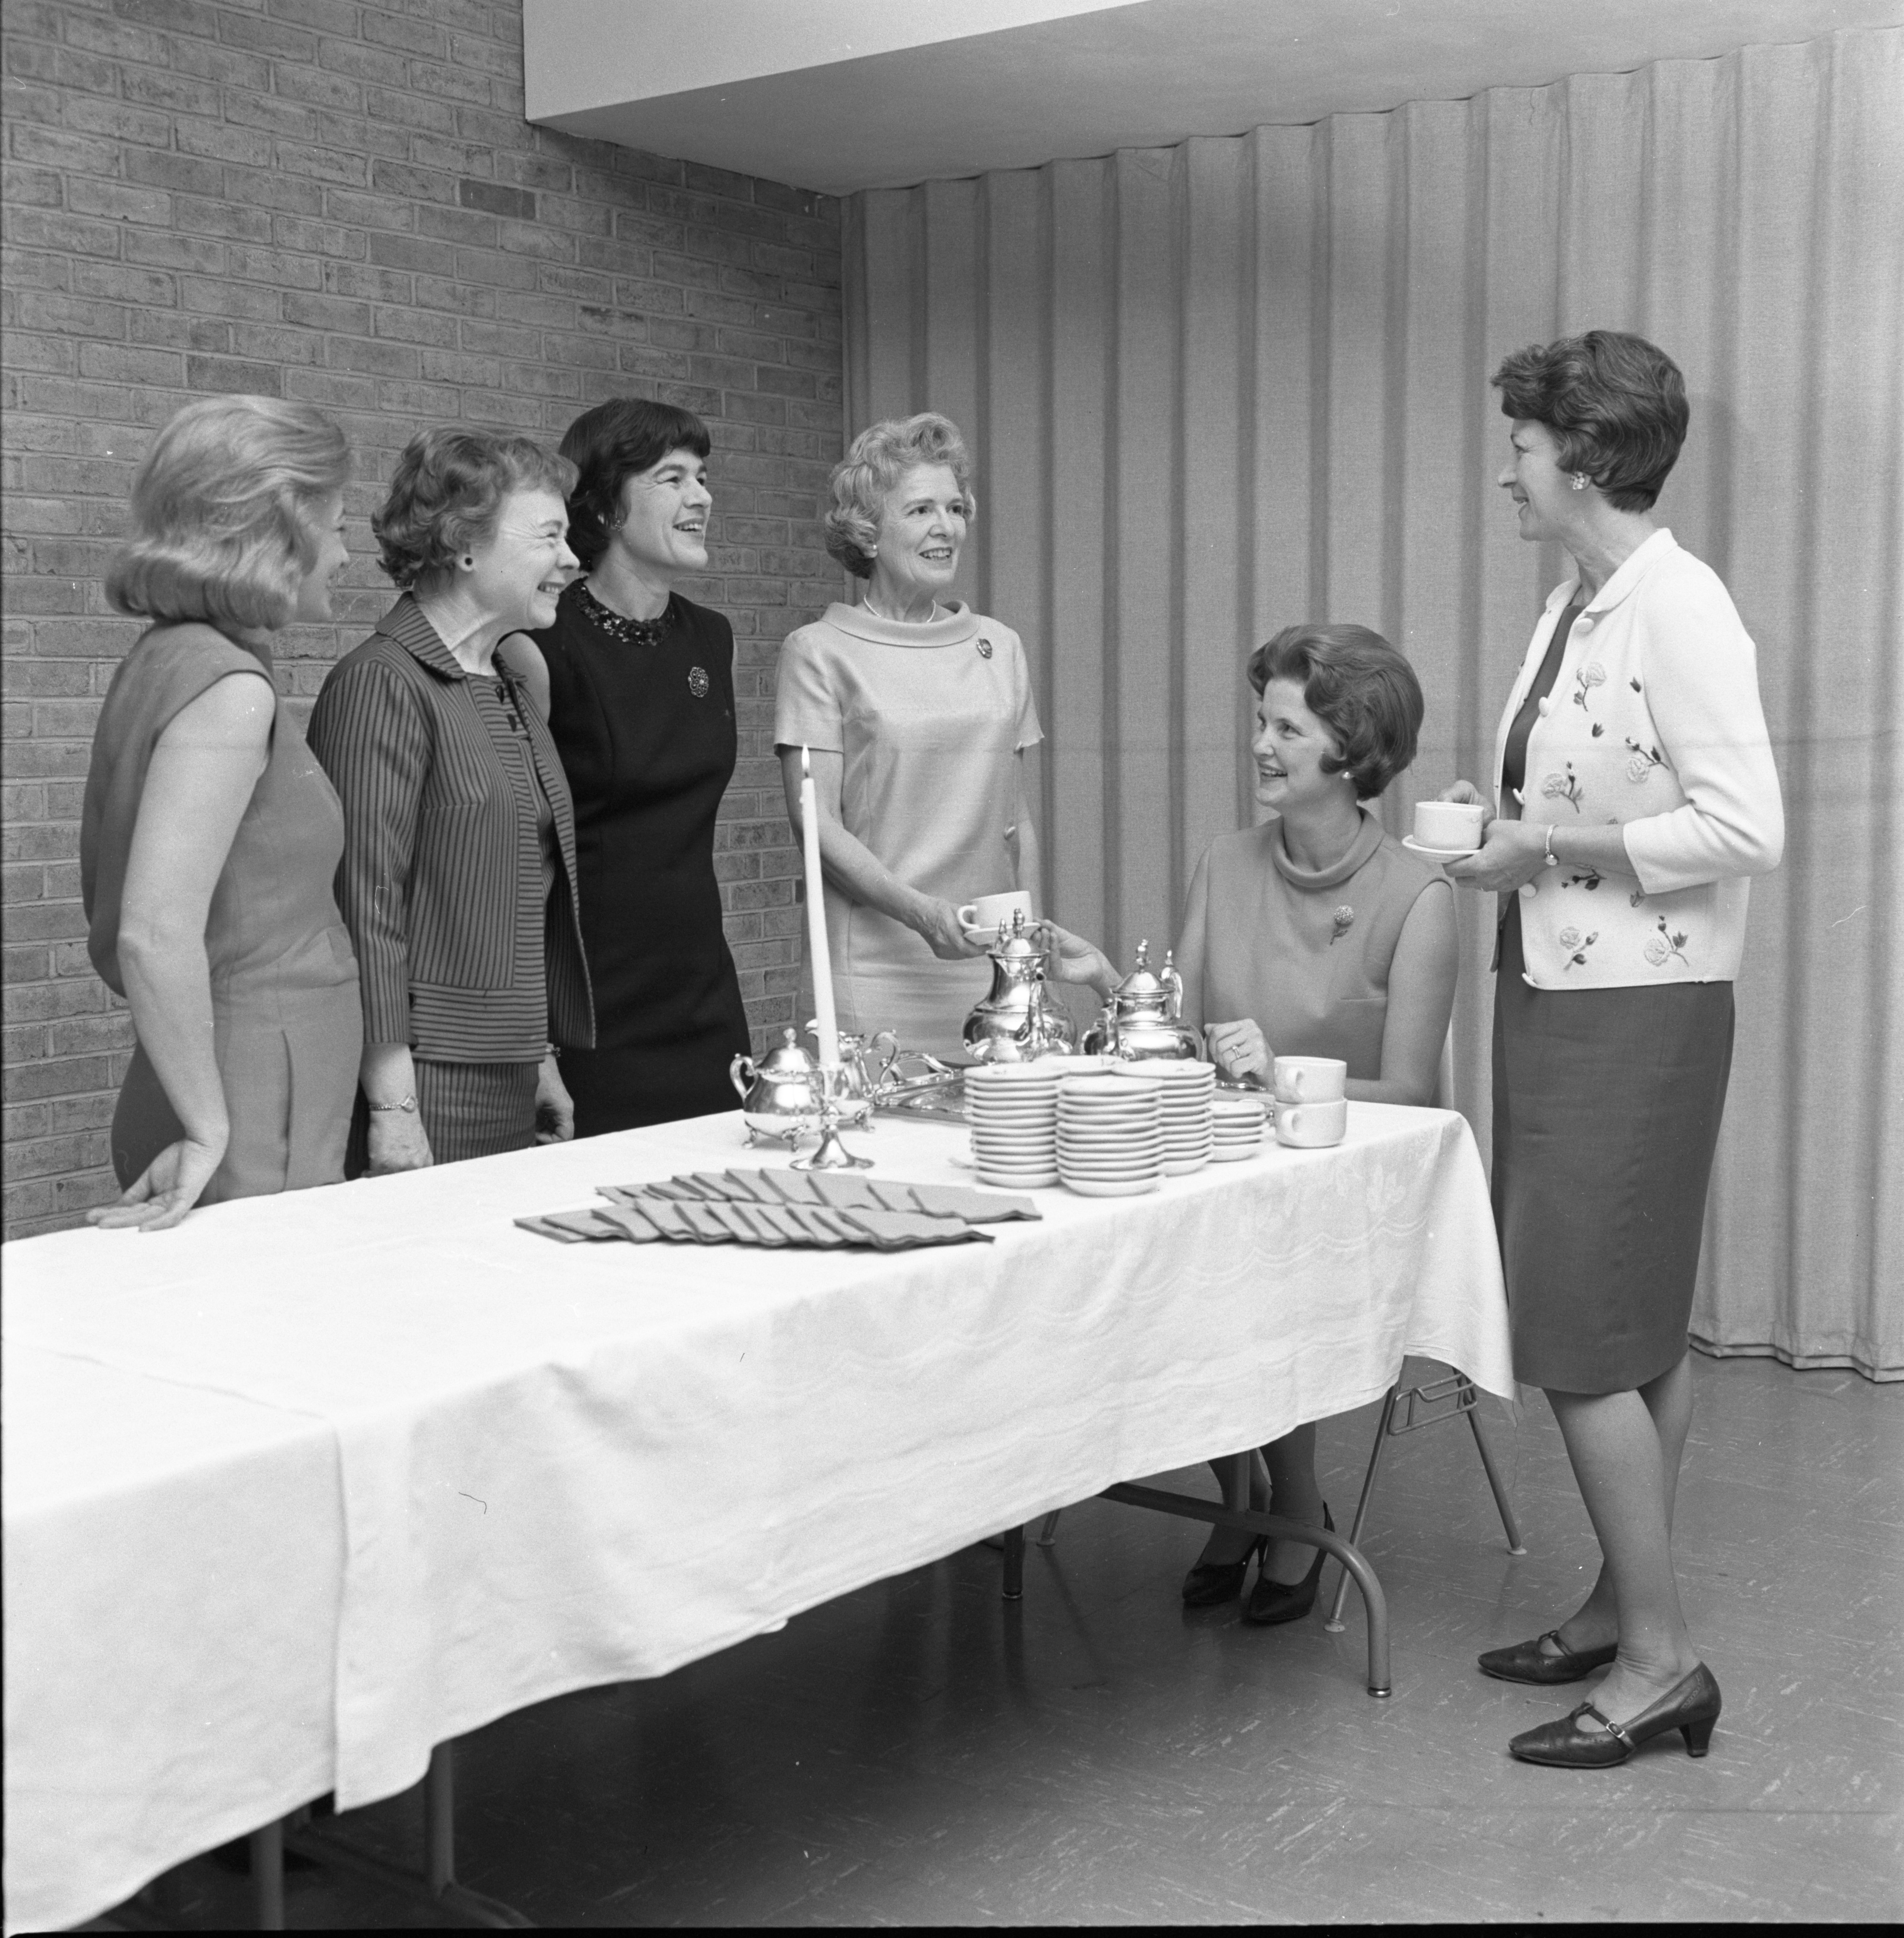 Ladies Chat Over Coffee At A League Of Women Voters Gathering, September 1967 image